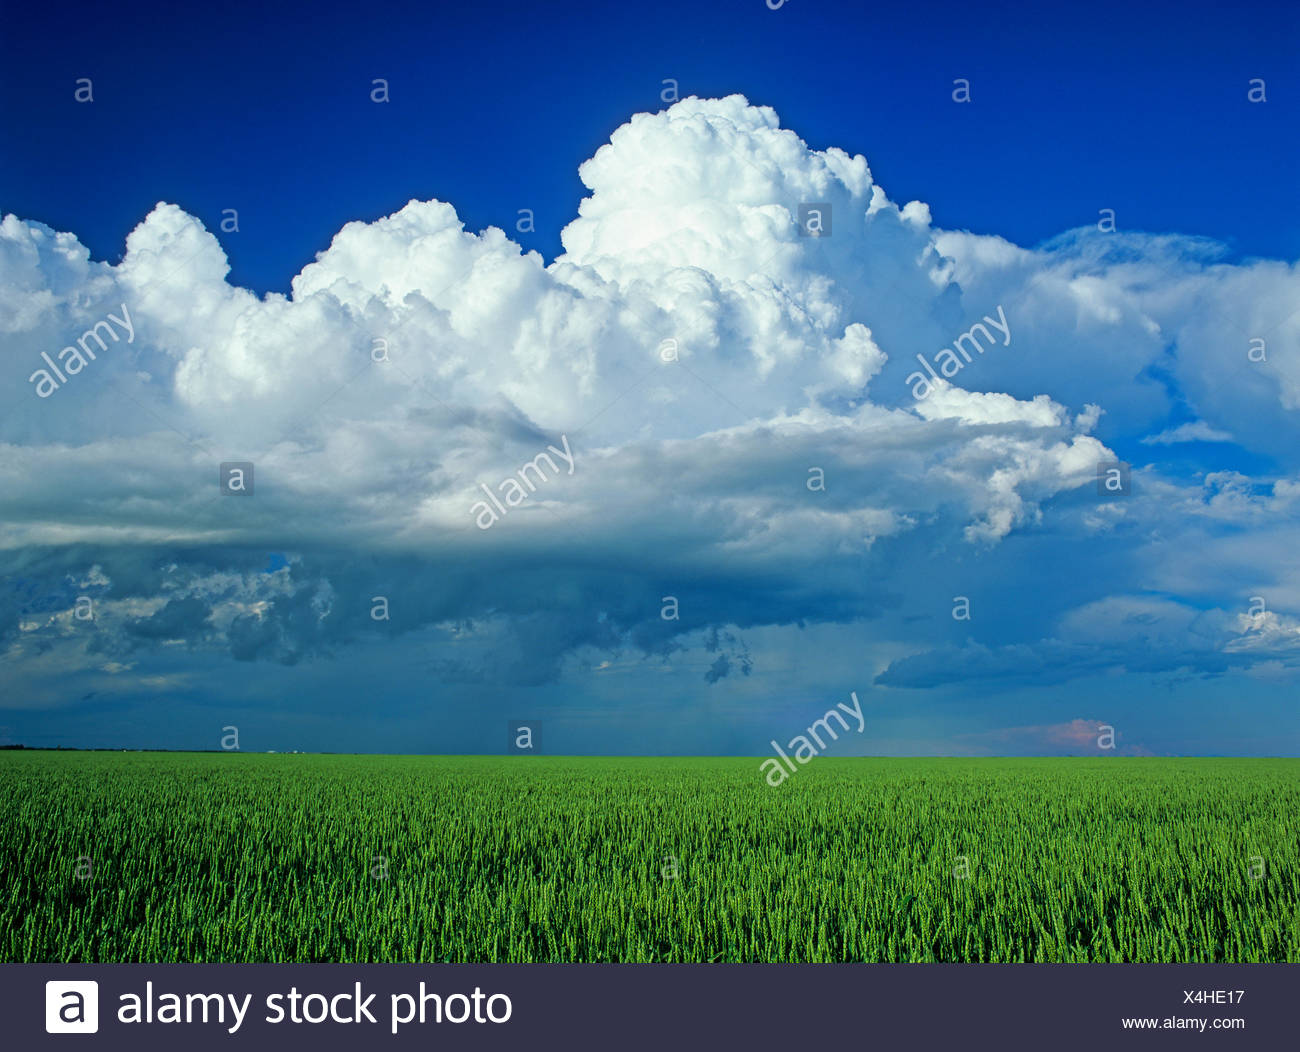 wheat field with a cumulonimbus cloud mass in the background near St. Pierre Joly, Manitoba, Canada - Stock Image